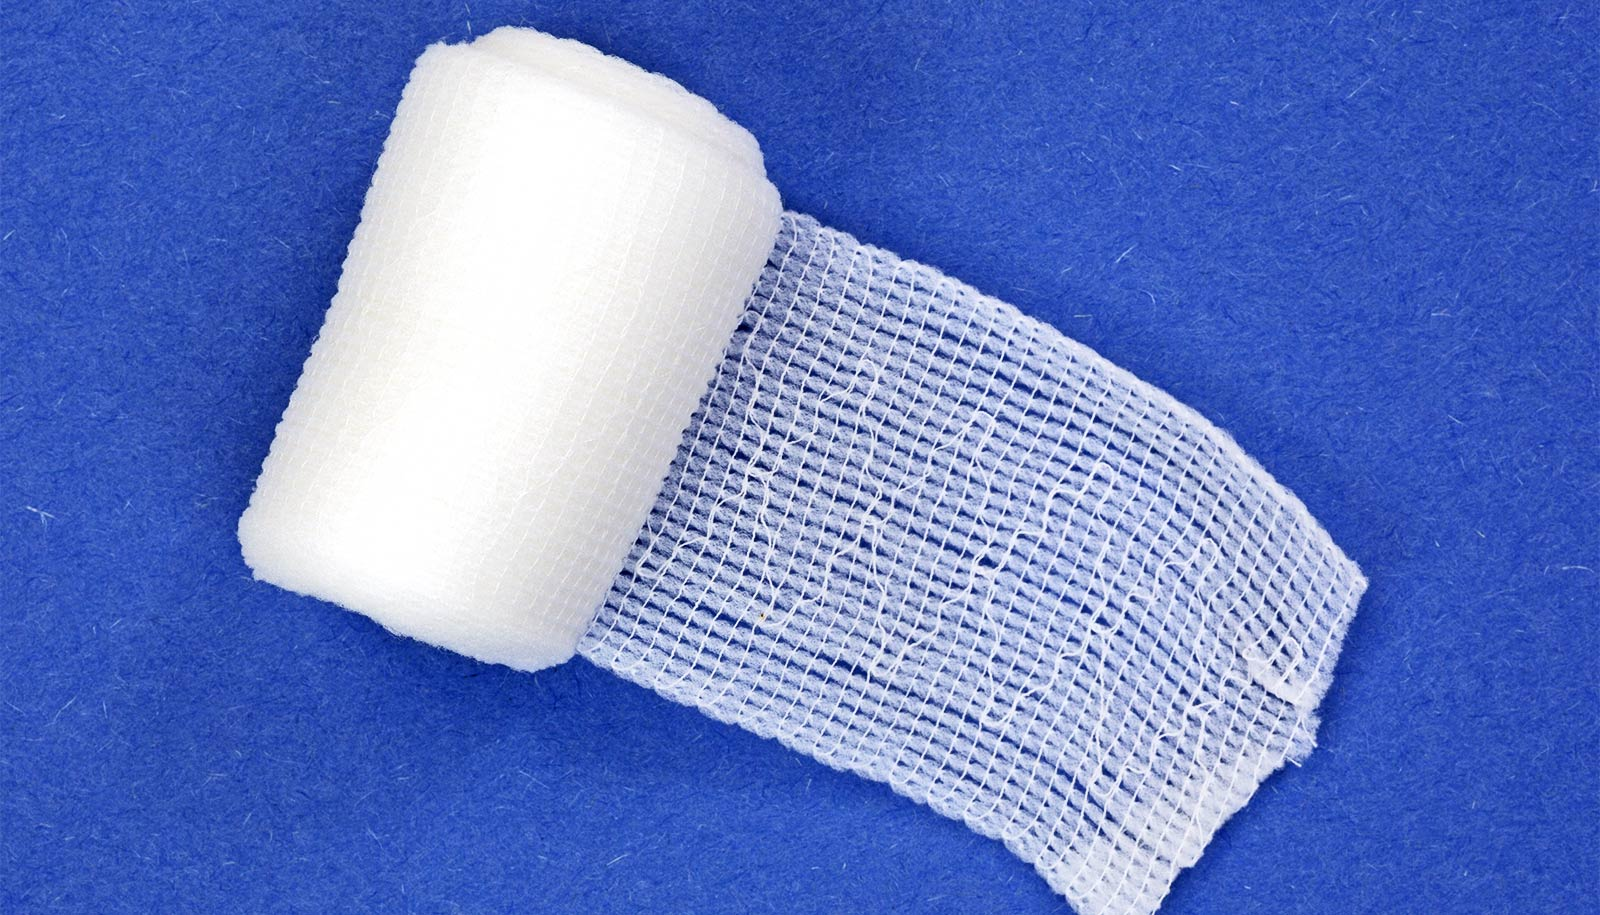 Bandage speeds blood clotting and doesn't stick